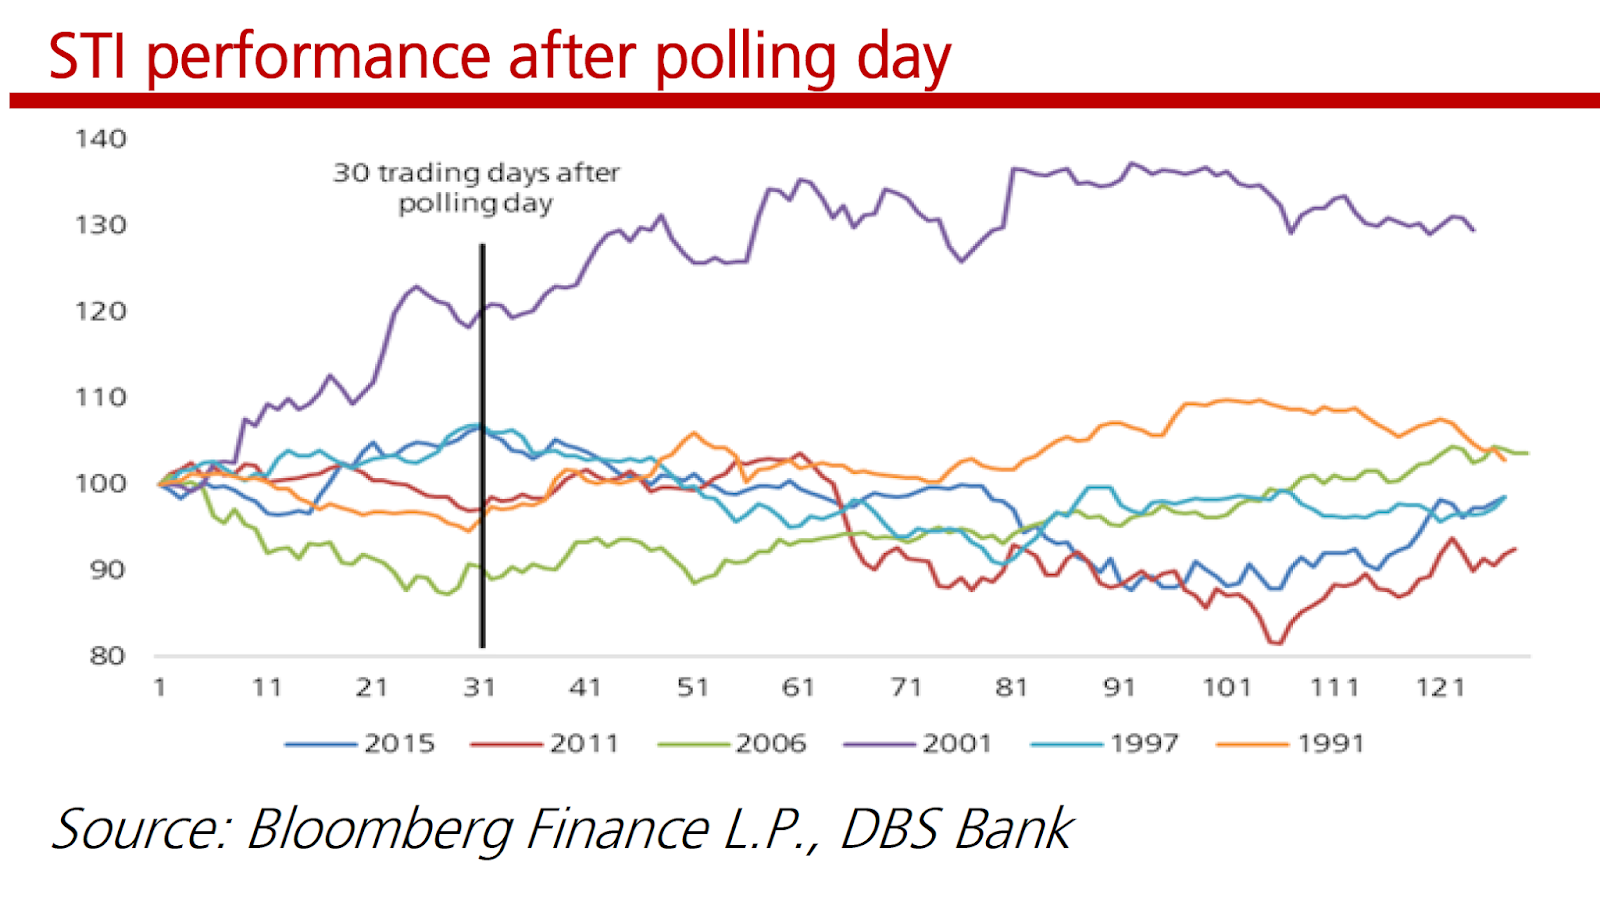 STI Performance After Polling Days - Singapore Market Focus - DBS Research | SGinvestors.io